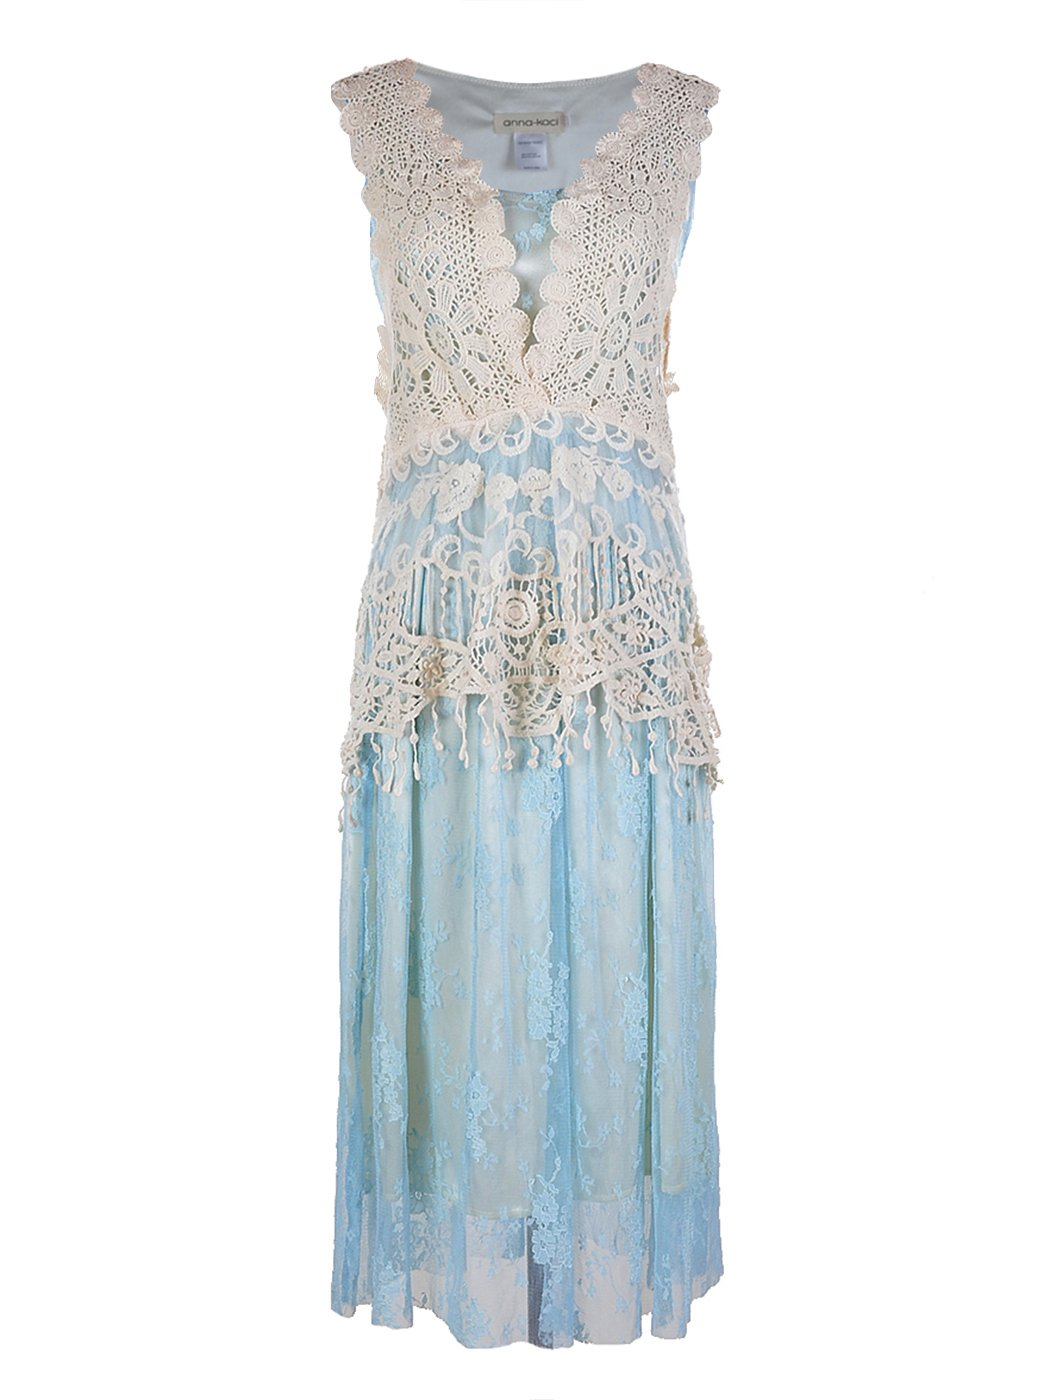 Anna-Kaci Womens Vintage Lace Gatsby 1920s Cocktail Dress with ...